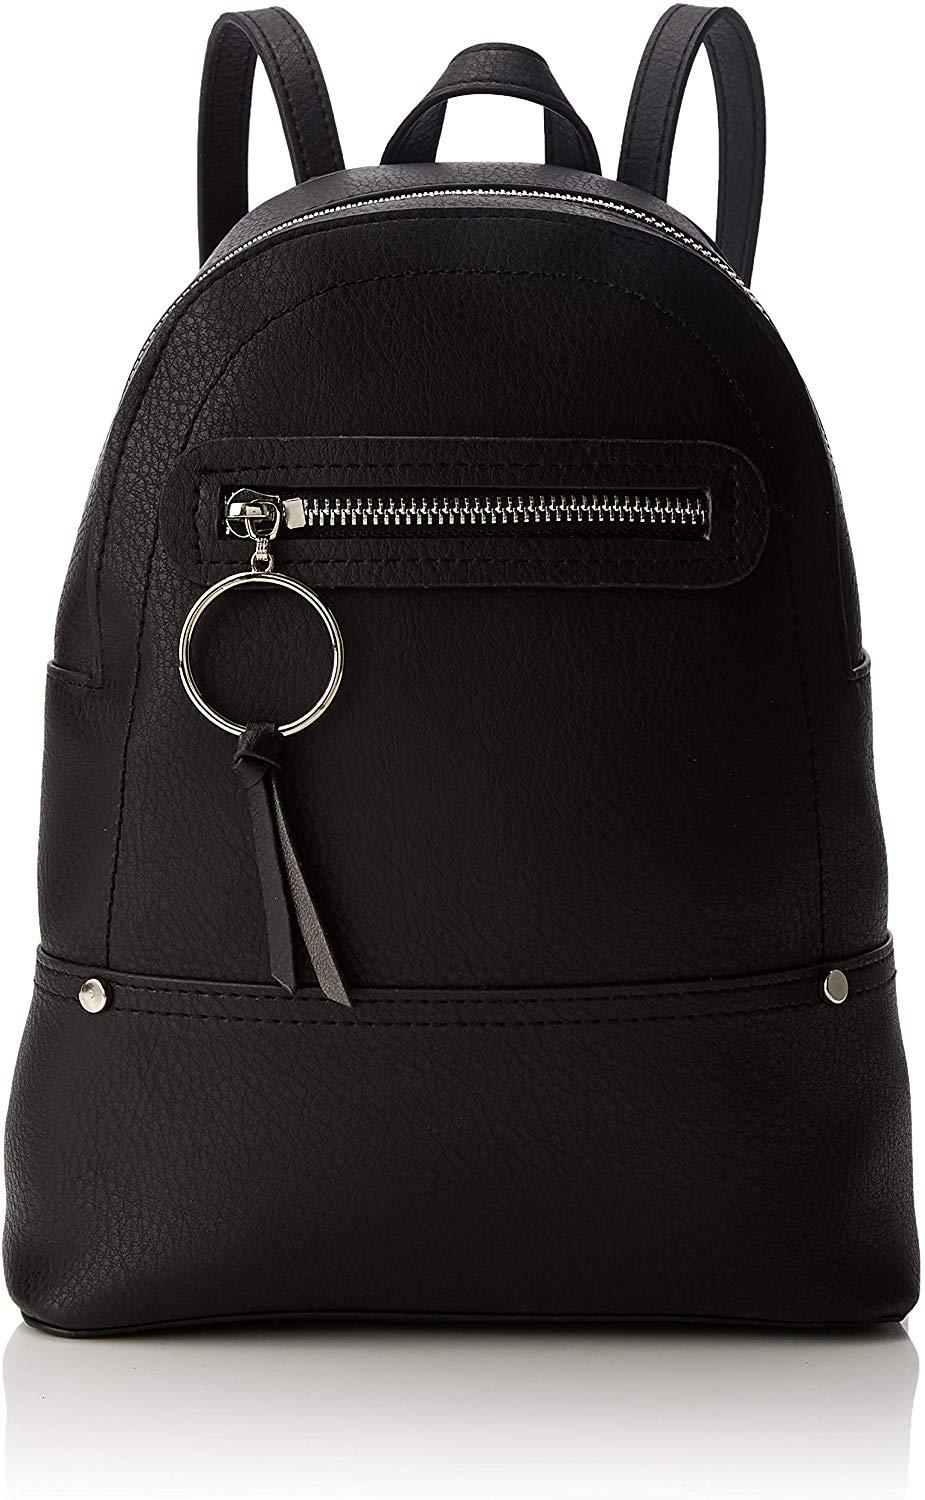 SL1563 ex Chainstore Black Ring Zip Utility Mini Backpack x12